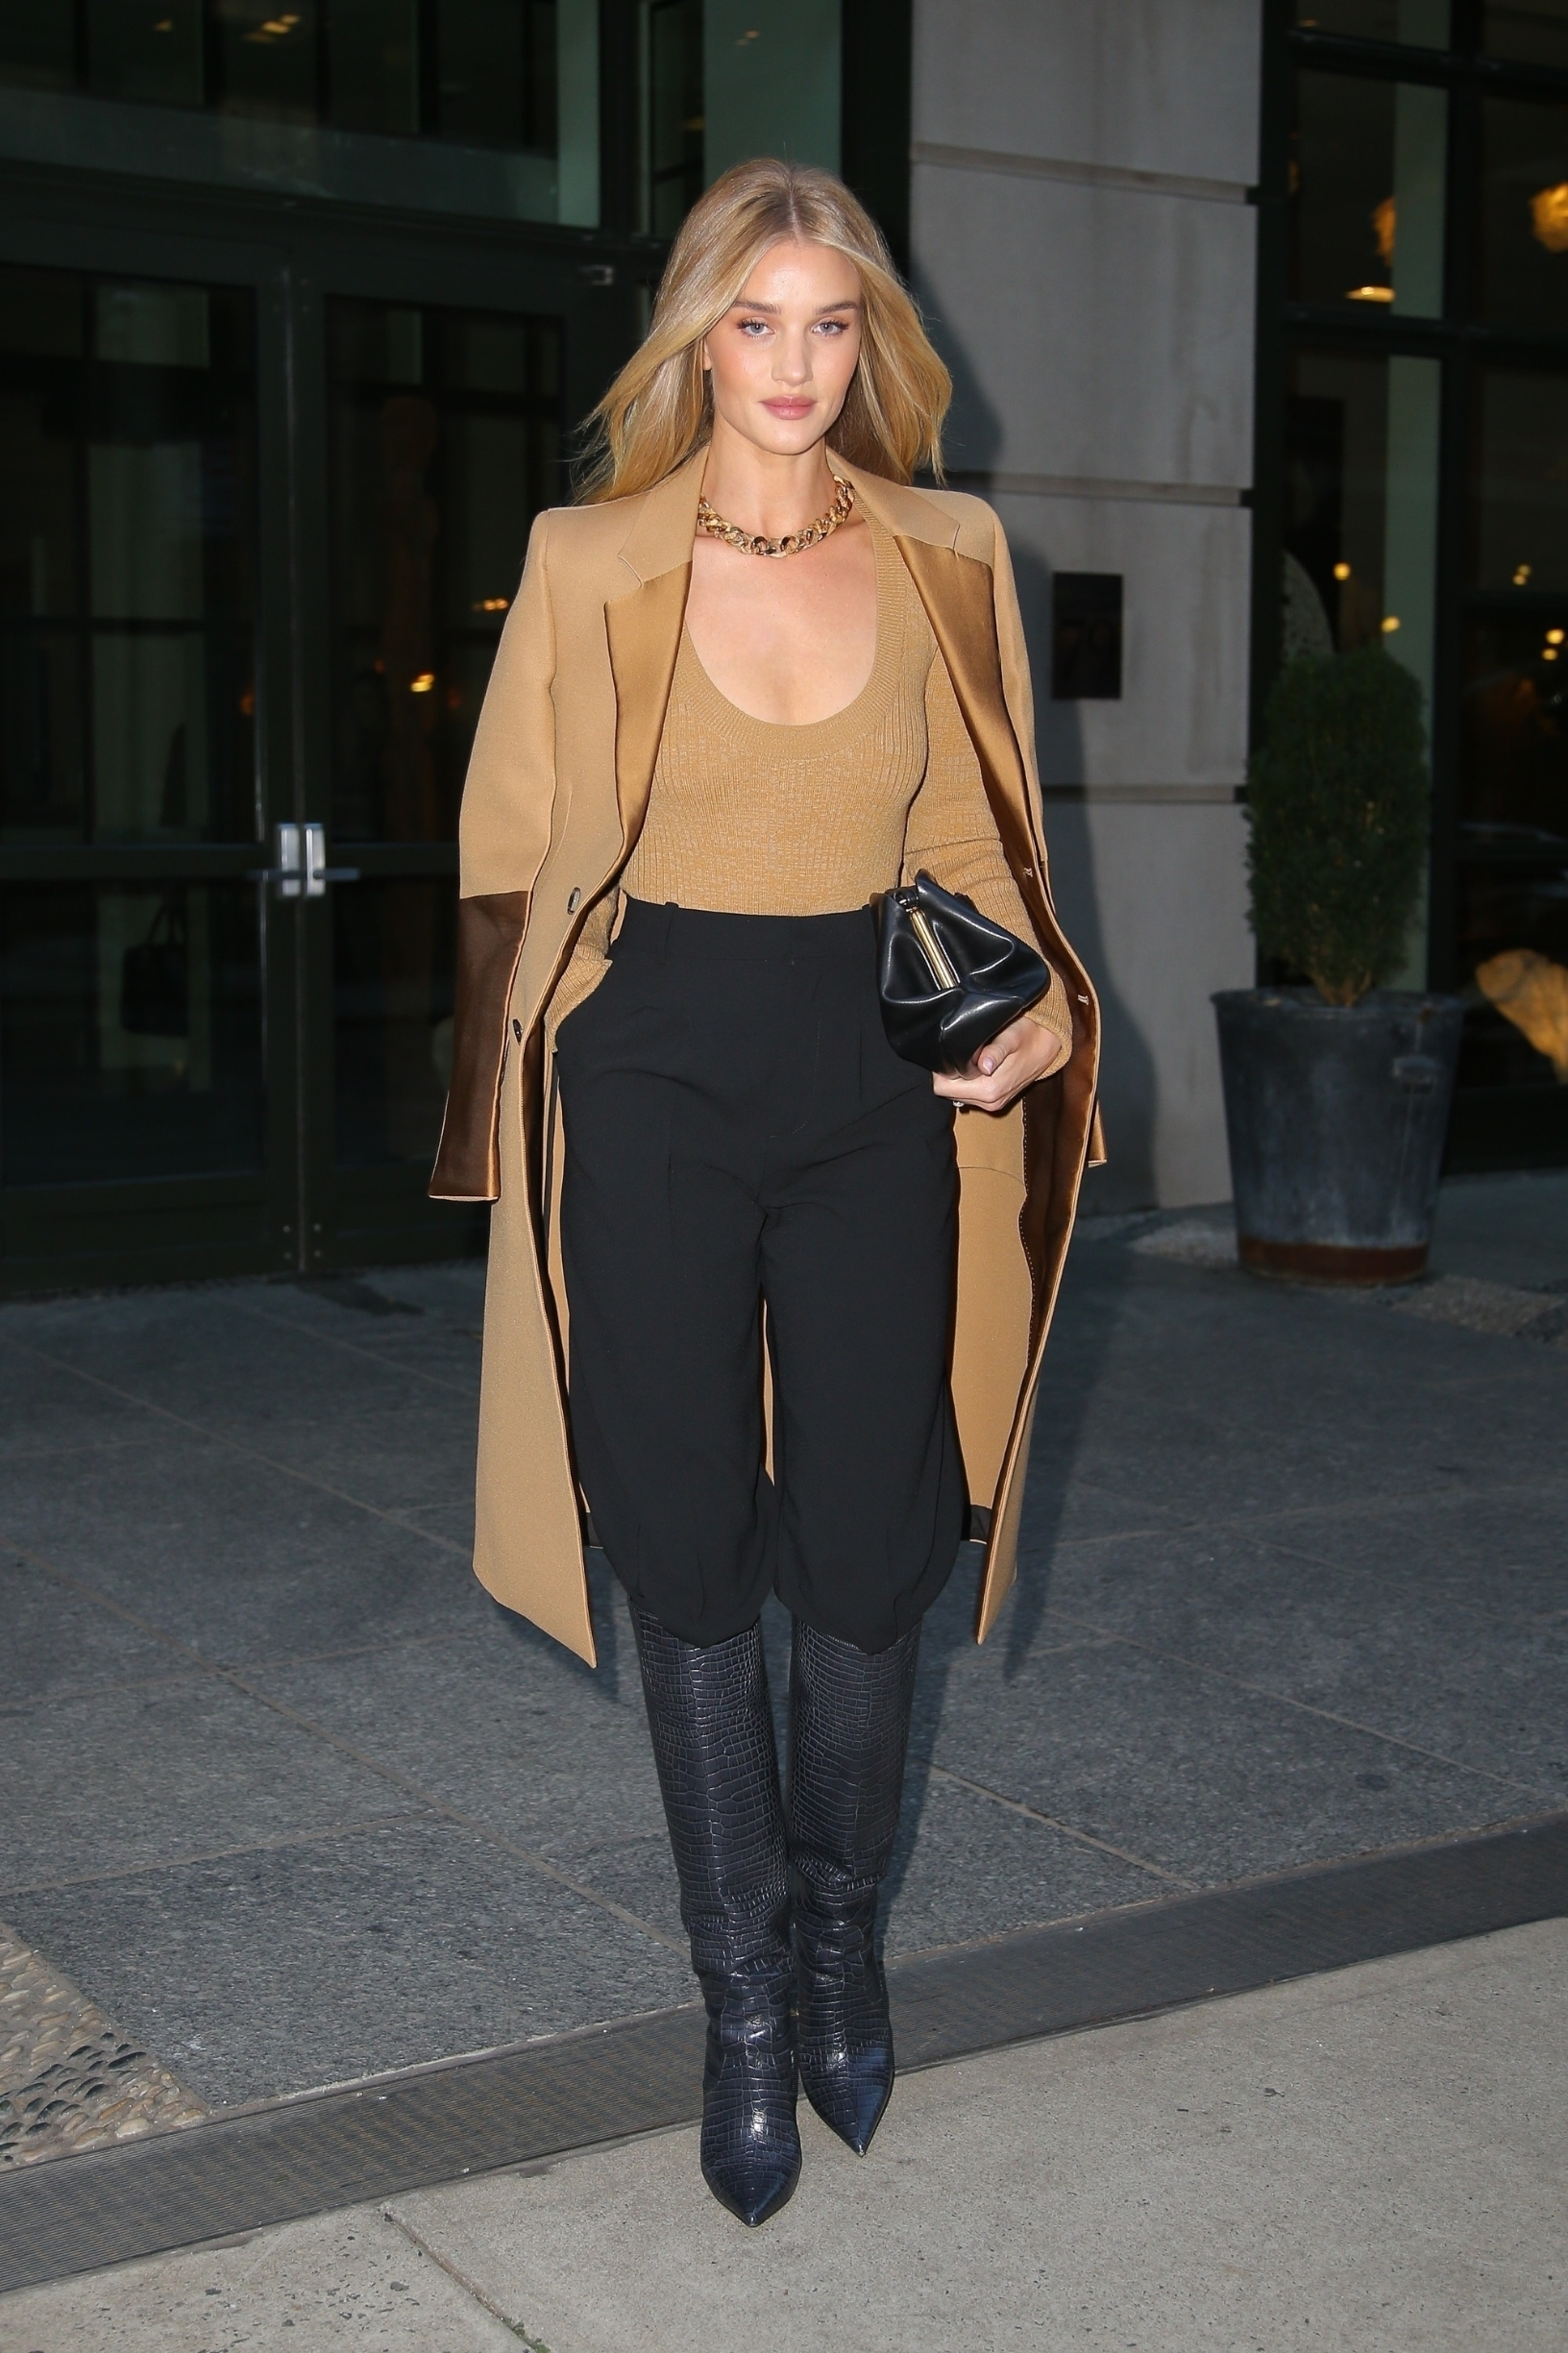 New York, NY  - *EXCLUSIVE* - Model, Rosie Huntington-Whiteley starts her day strong in a fashionable outfit while stepping out in New York. Rosie makes comfort fashionable in a beige coat draped over her beige tope with black pants tucked into black knee high boots.  BACKGRID USA 8 NOVEMBER 2019, Image: 481819485, License: Rights-managed, Restrictions: , Model Release: no, Credit line: Ulices Ramales / BACKGRID / Backgrid USA / Profimedia